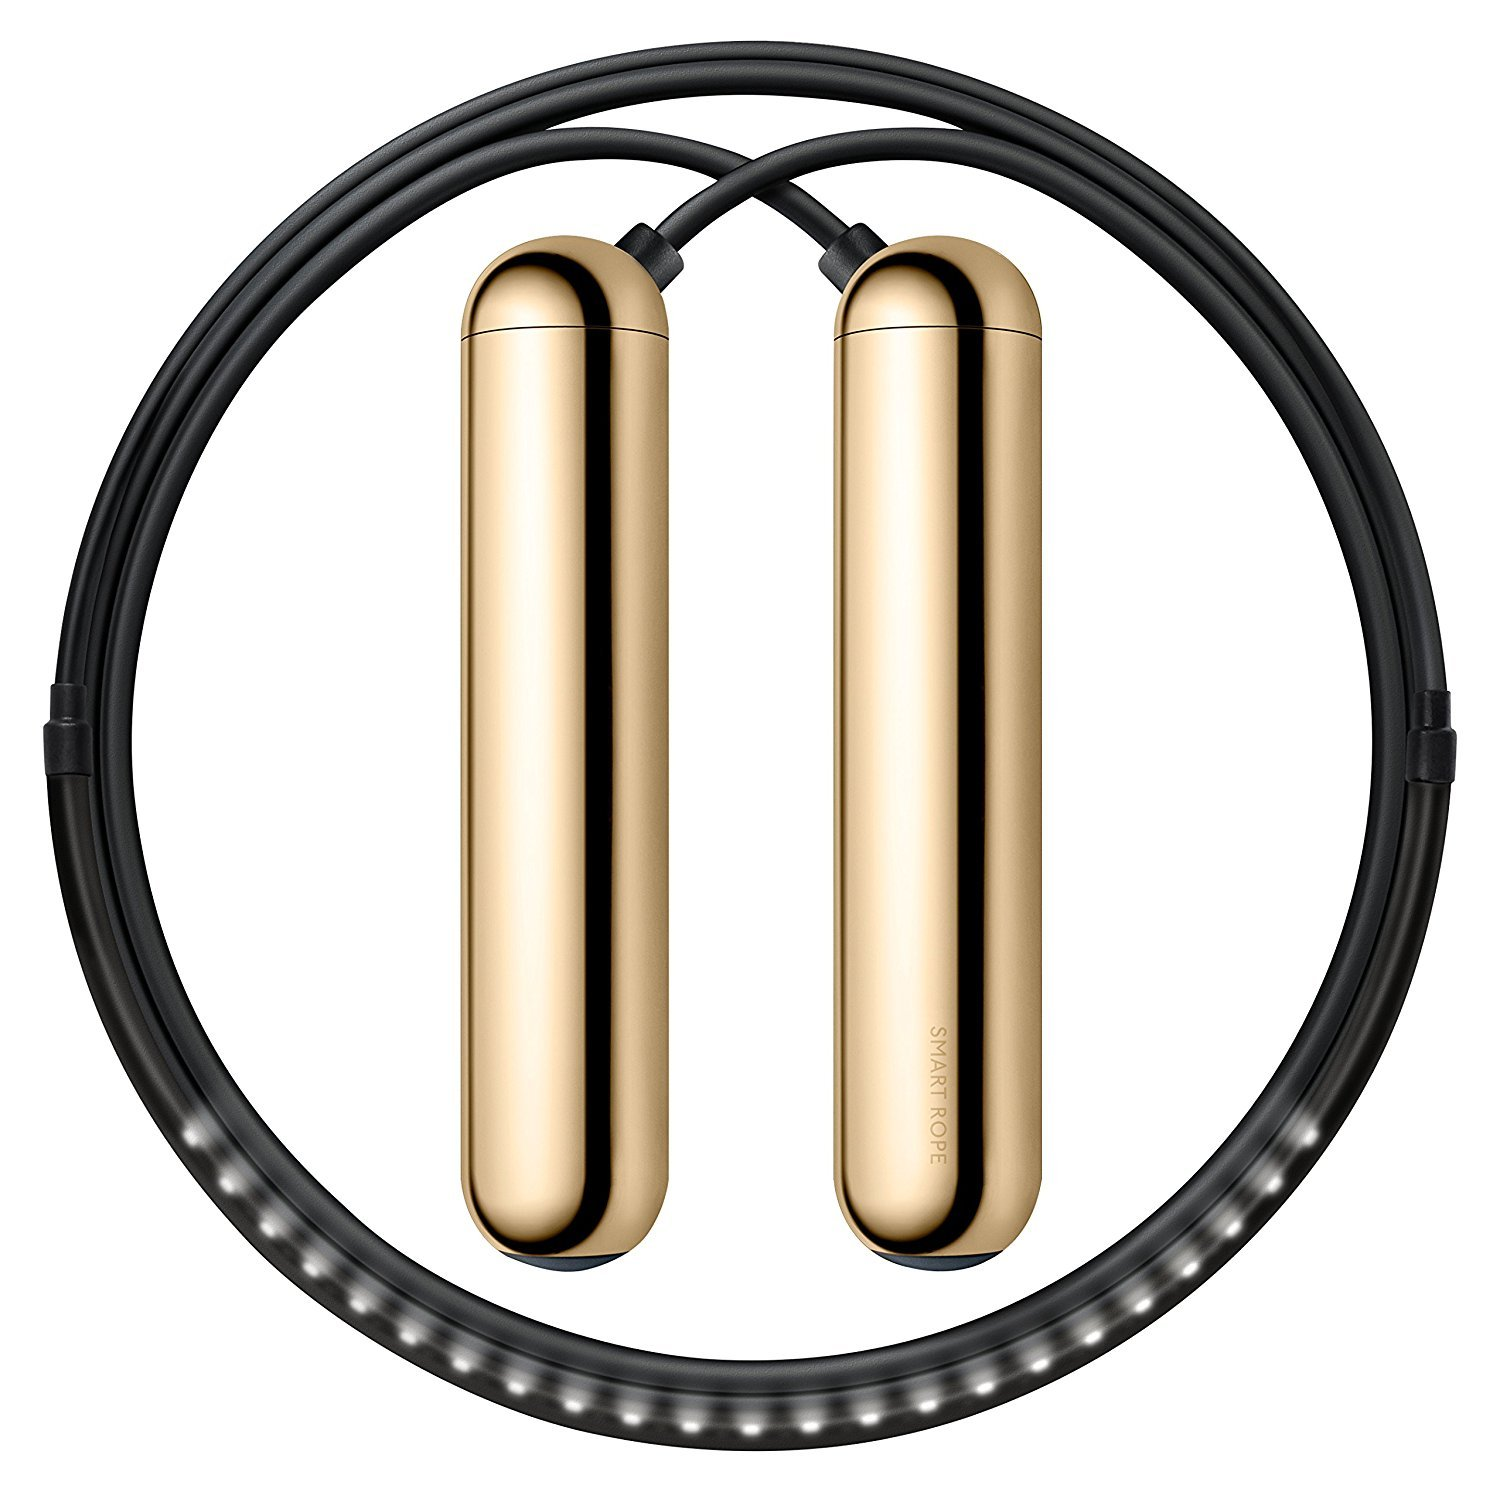 TANGRAM Factory Smart Rope - LED Embedded Jump Rope (Gold, Small)